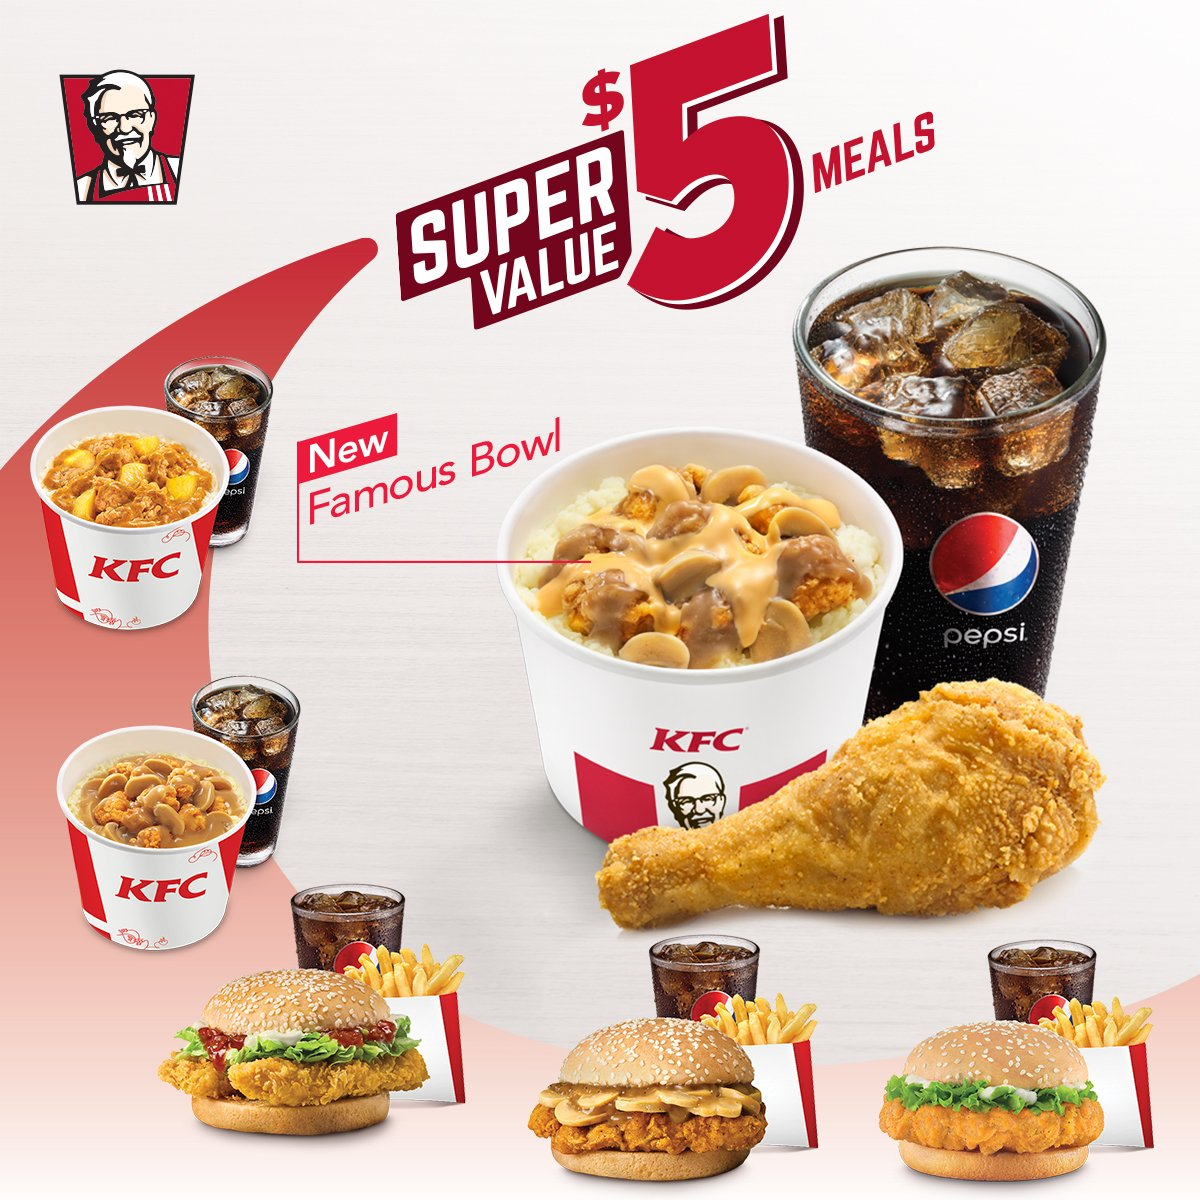 Kfc Singapore On Twitter Always On The Hunt For The Best Deal